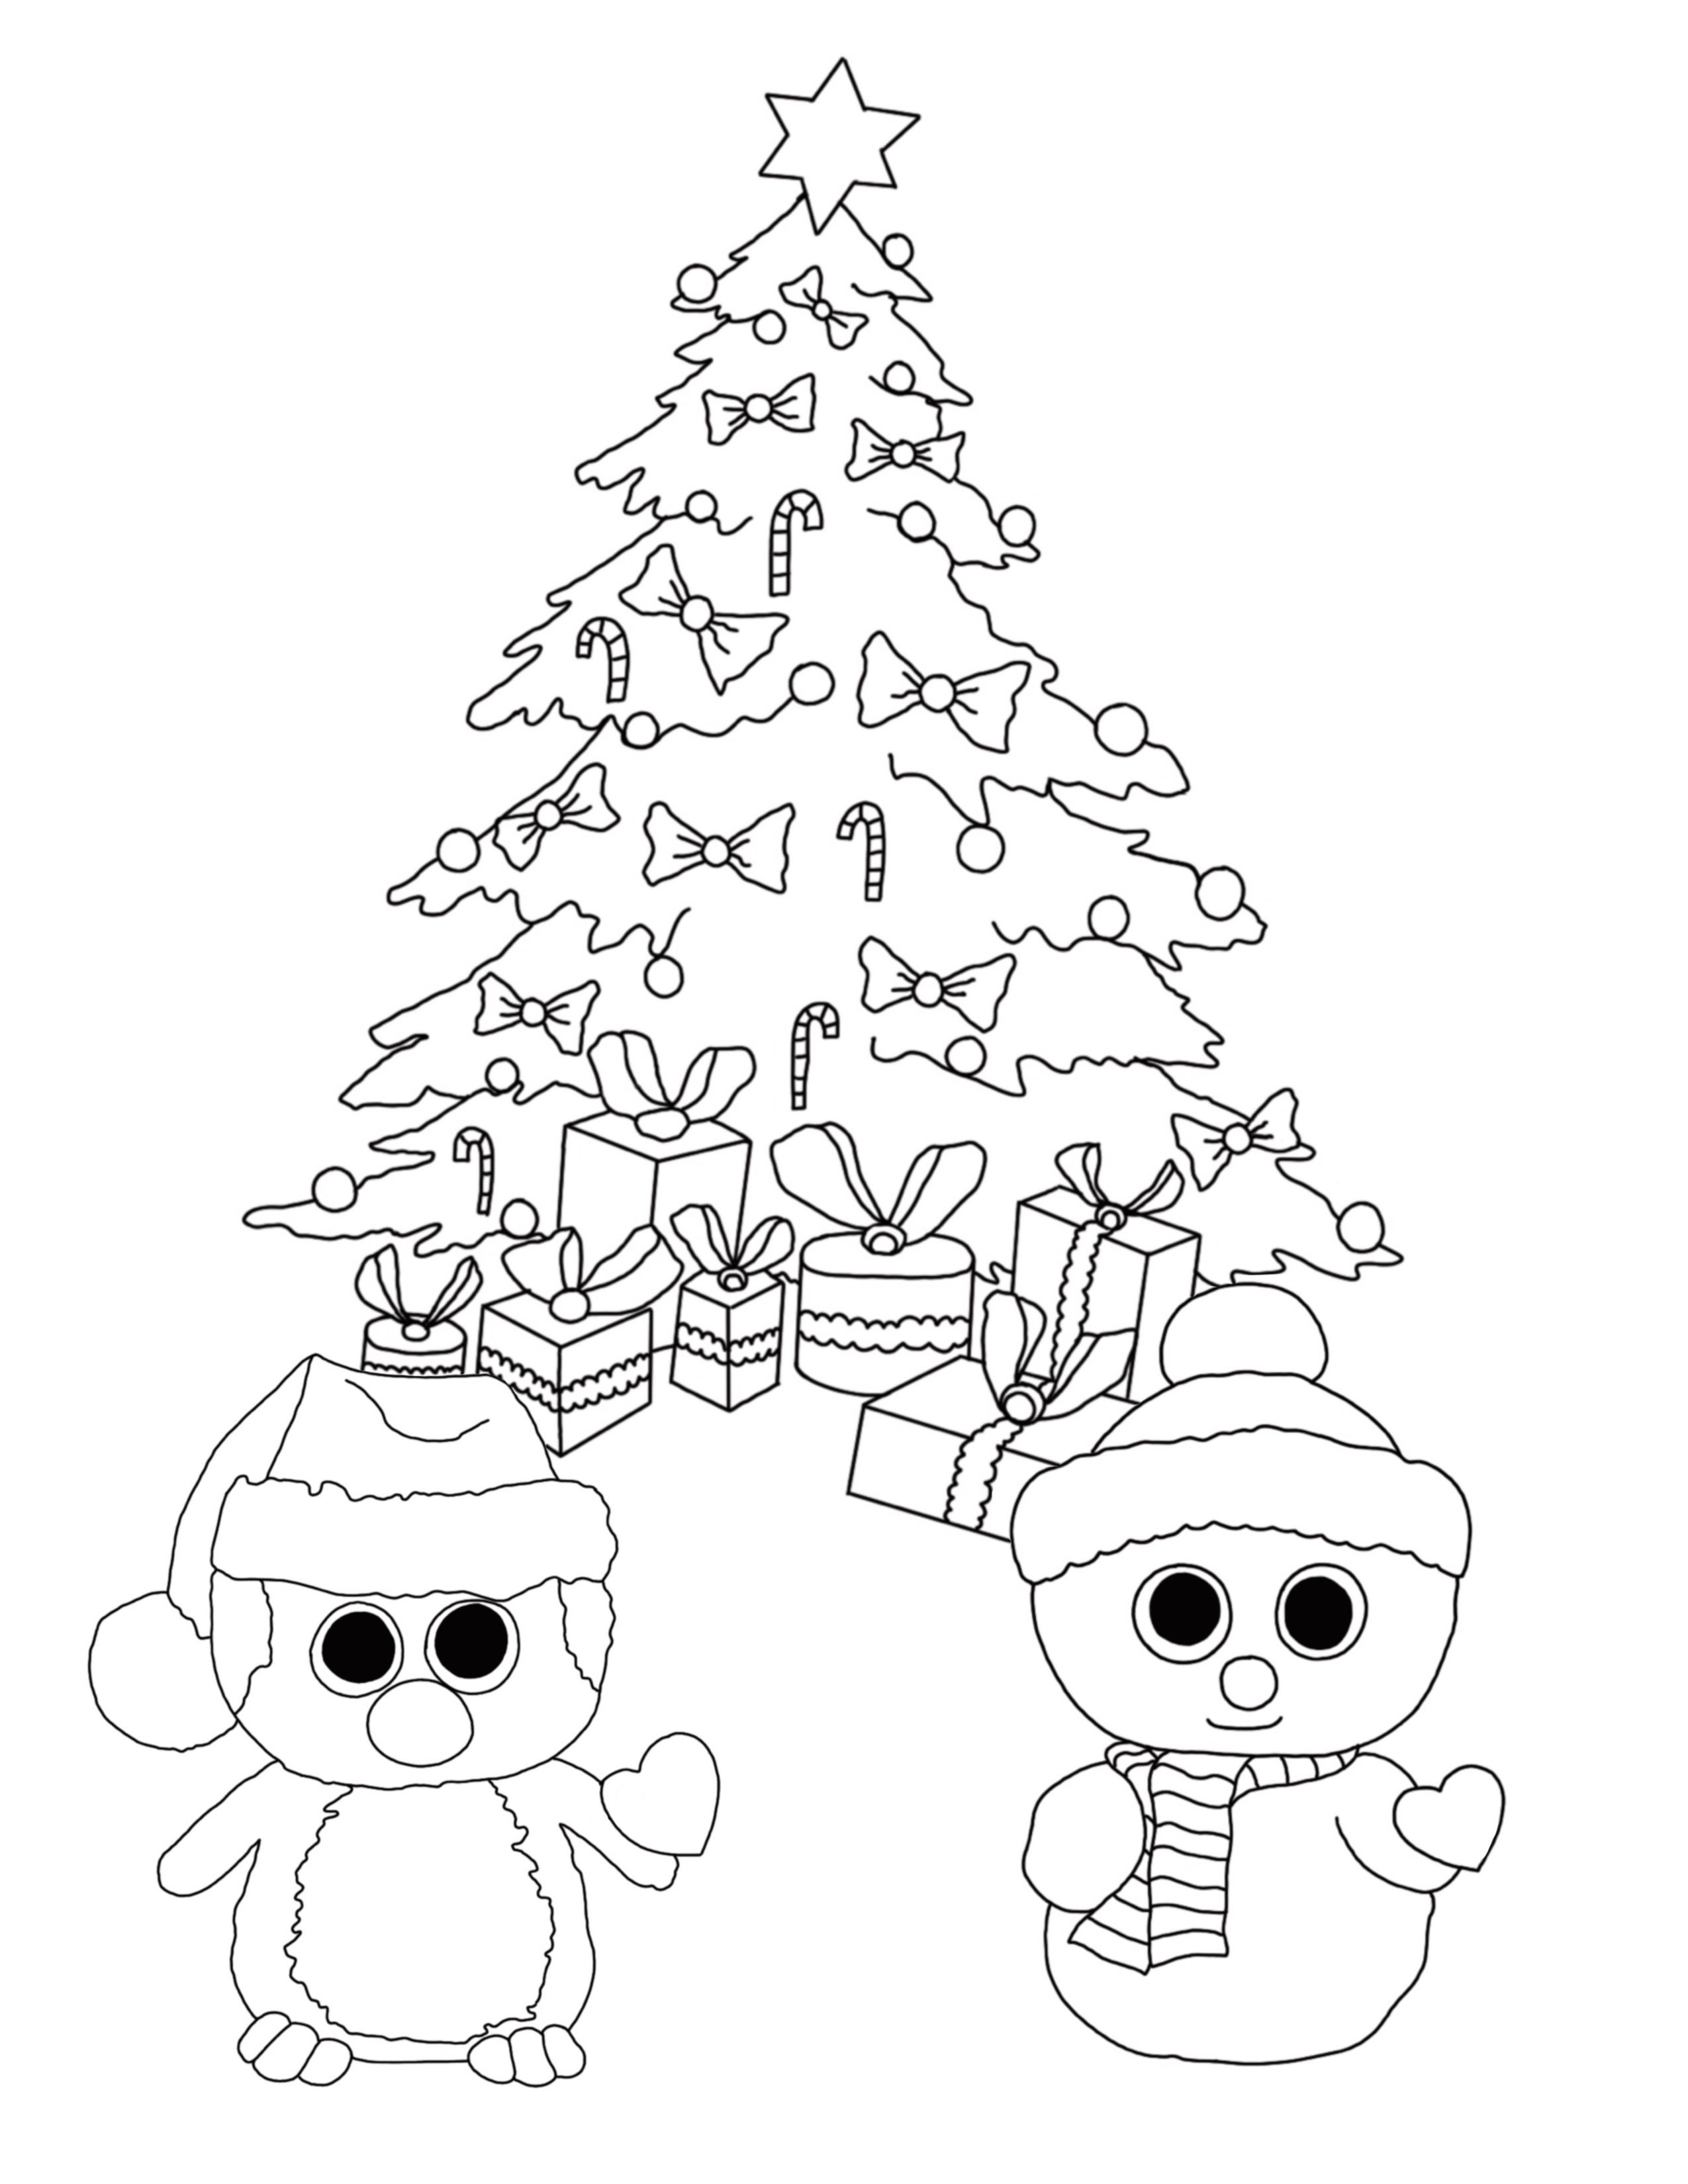 pinbeanie boo fan club on beanie boo coloring pages